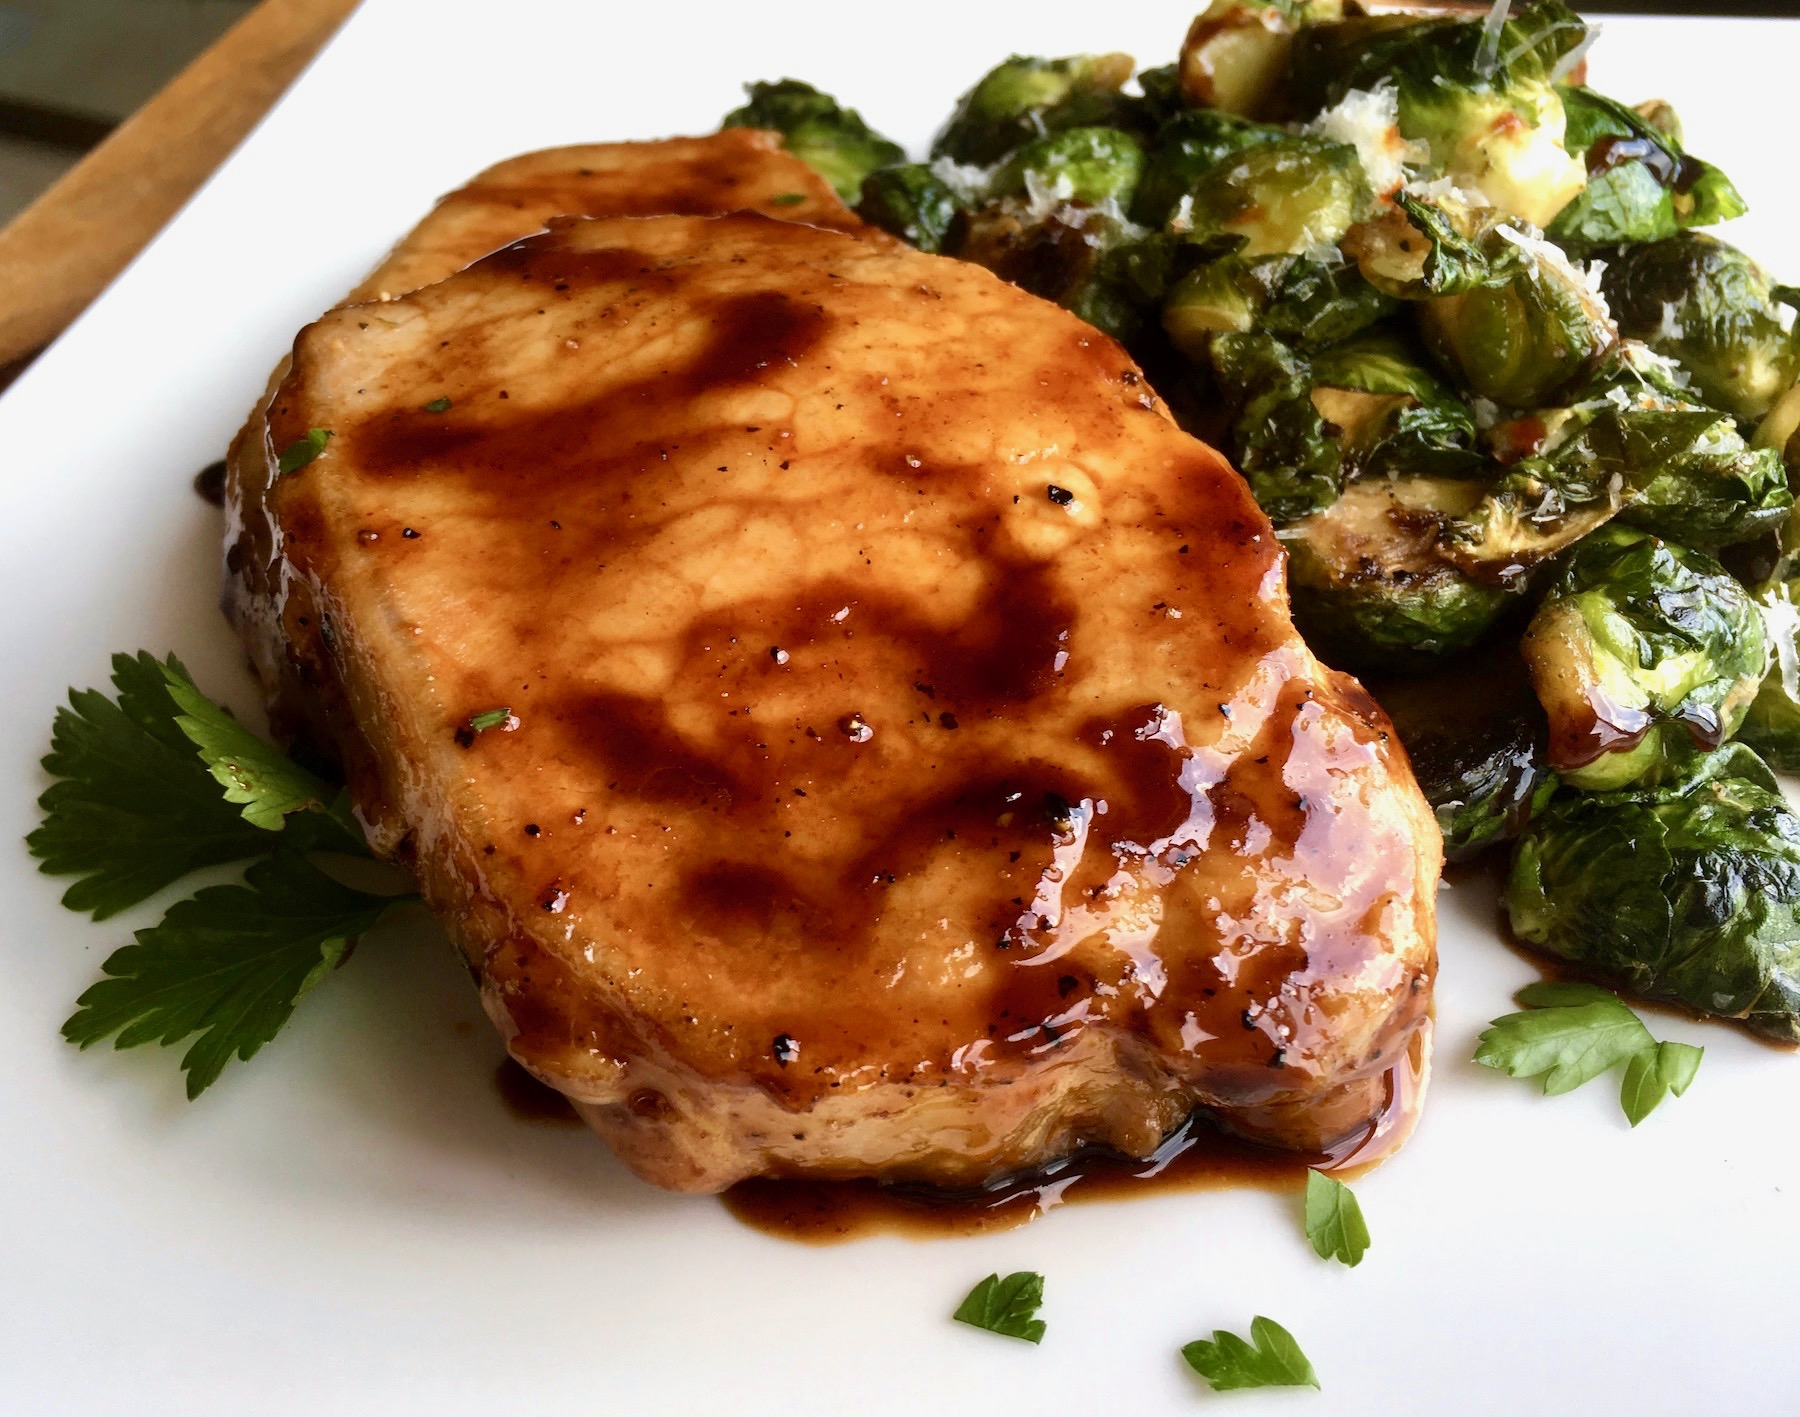 Have this easy skillet Pork Chops with Maple Balsamic Reduction on the table in under 30 minutes. Perfect for a weeknight meal, this simple skillet dinner of Pork Chops with Maple Balsamic Reduction will quickly become a family favorite.